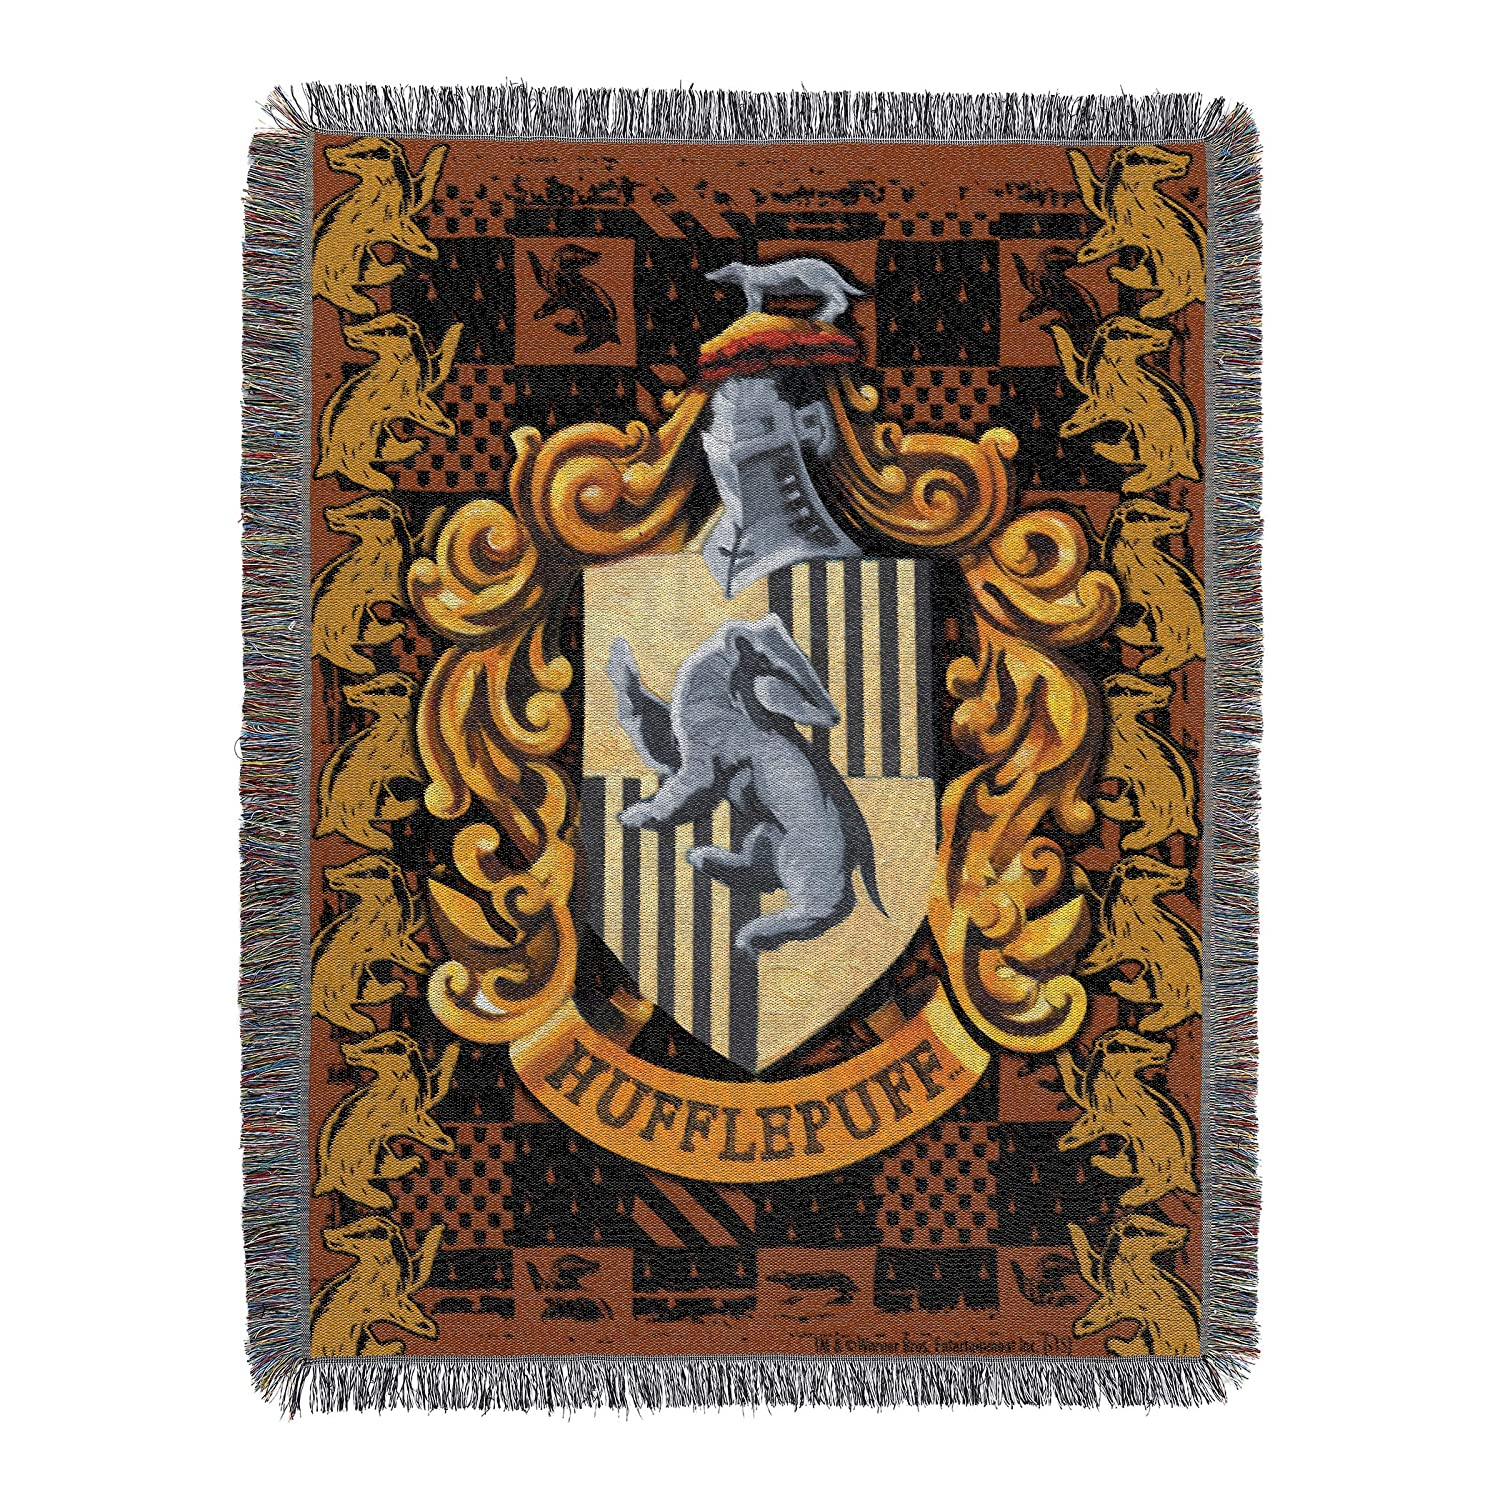 "Harry Potter, ""Hufflepuff Crest"" Woven Tapestry Throw Blanket, 48"" x 60"", Multi Color"